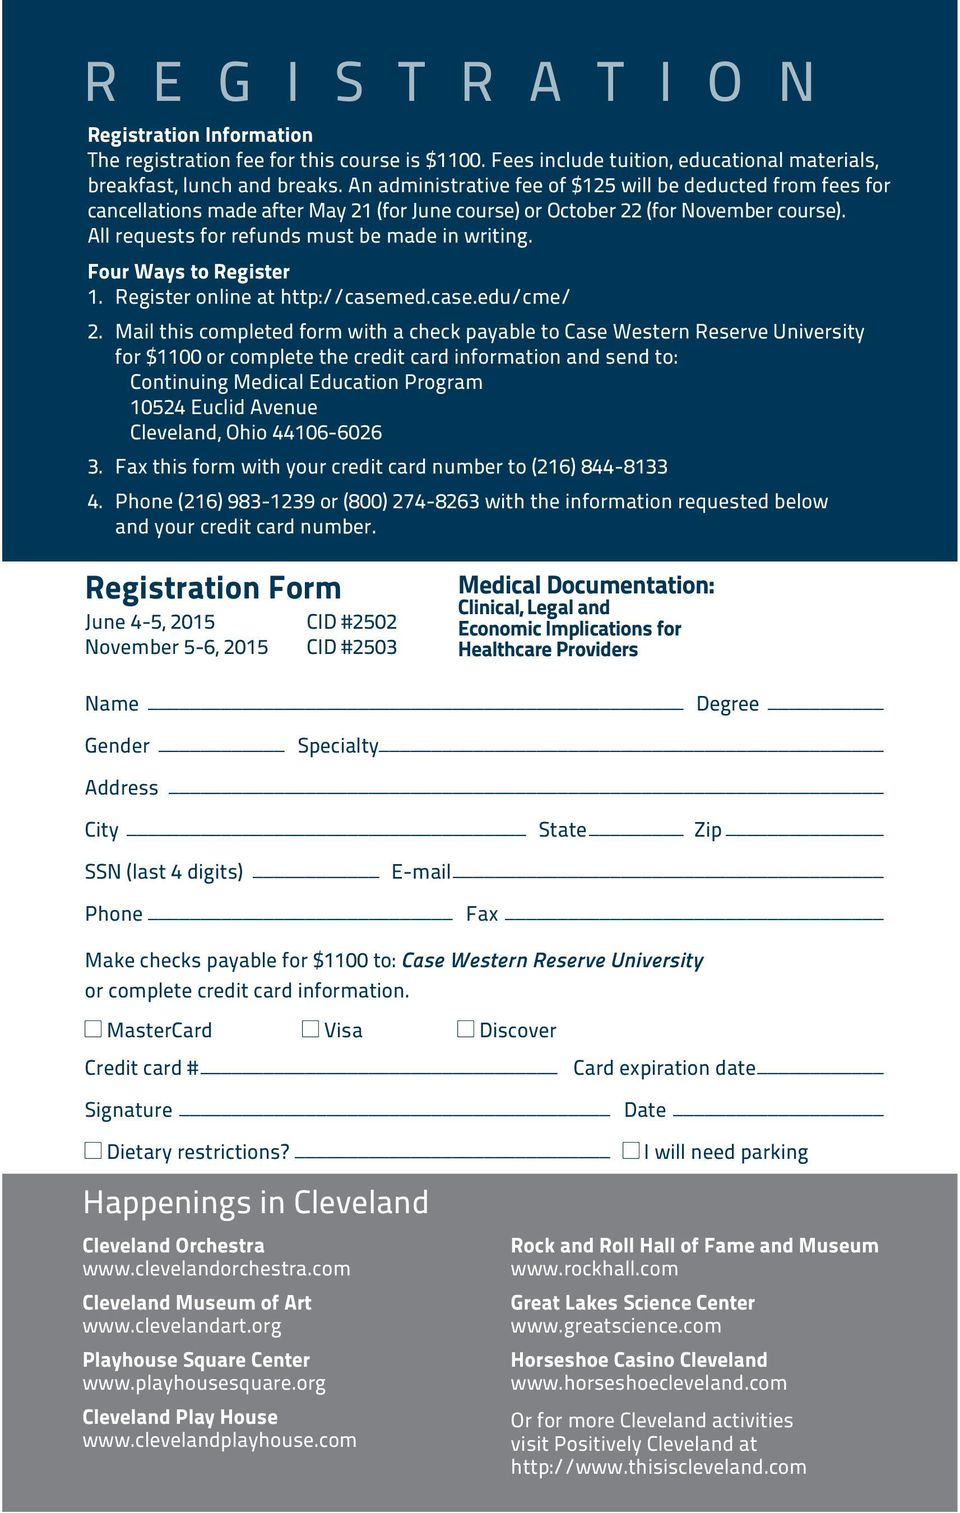 Four Ways to Register 1. Register online at http://casemed.case.edu/cme/ 2.